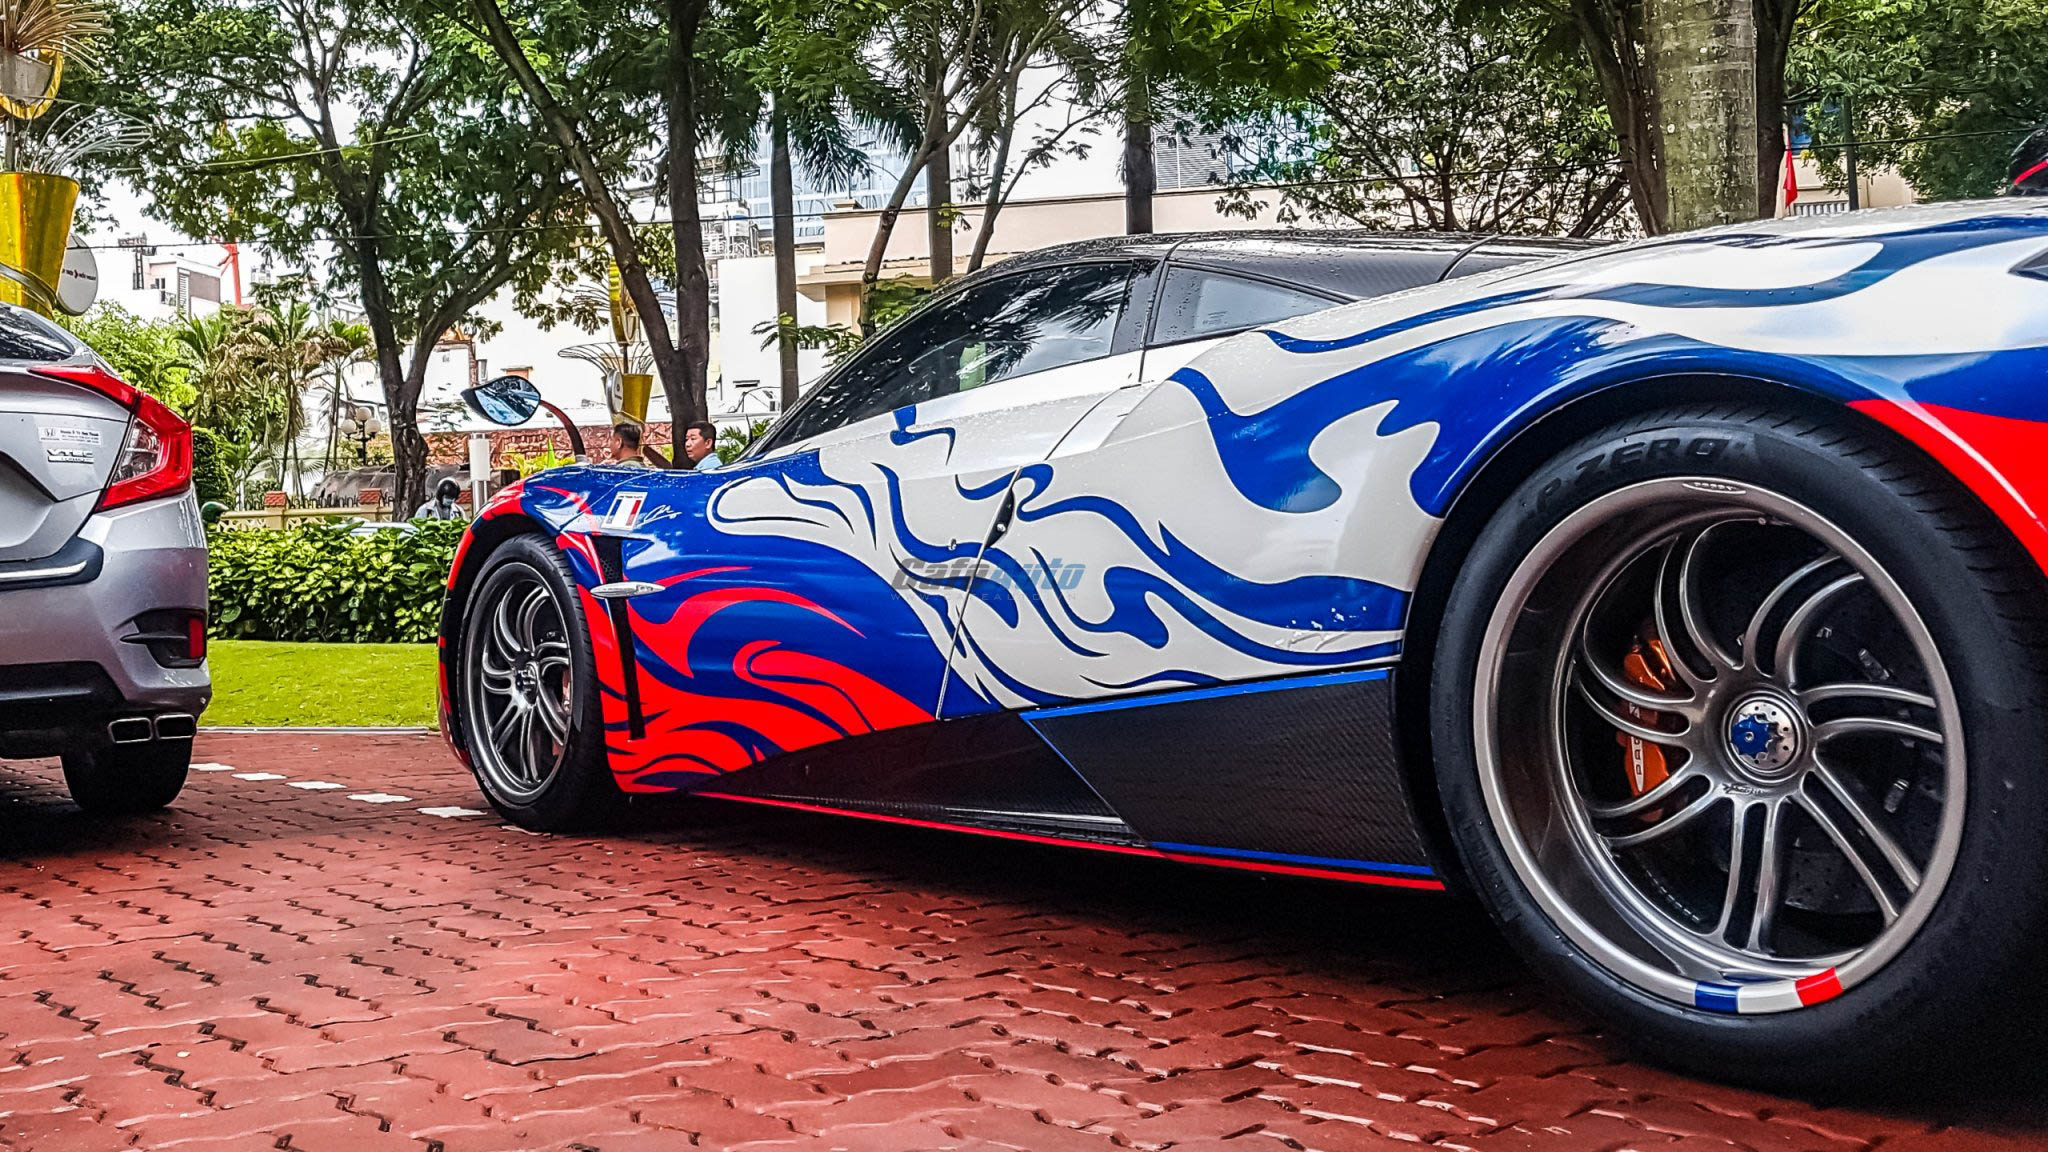 paganihuayra-cafeautovn-22